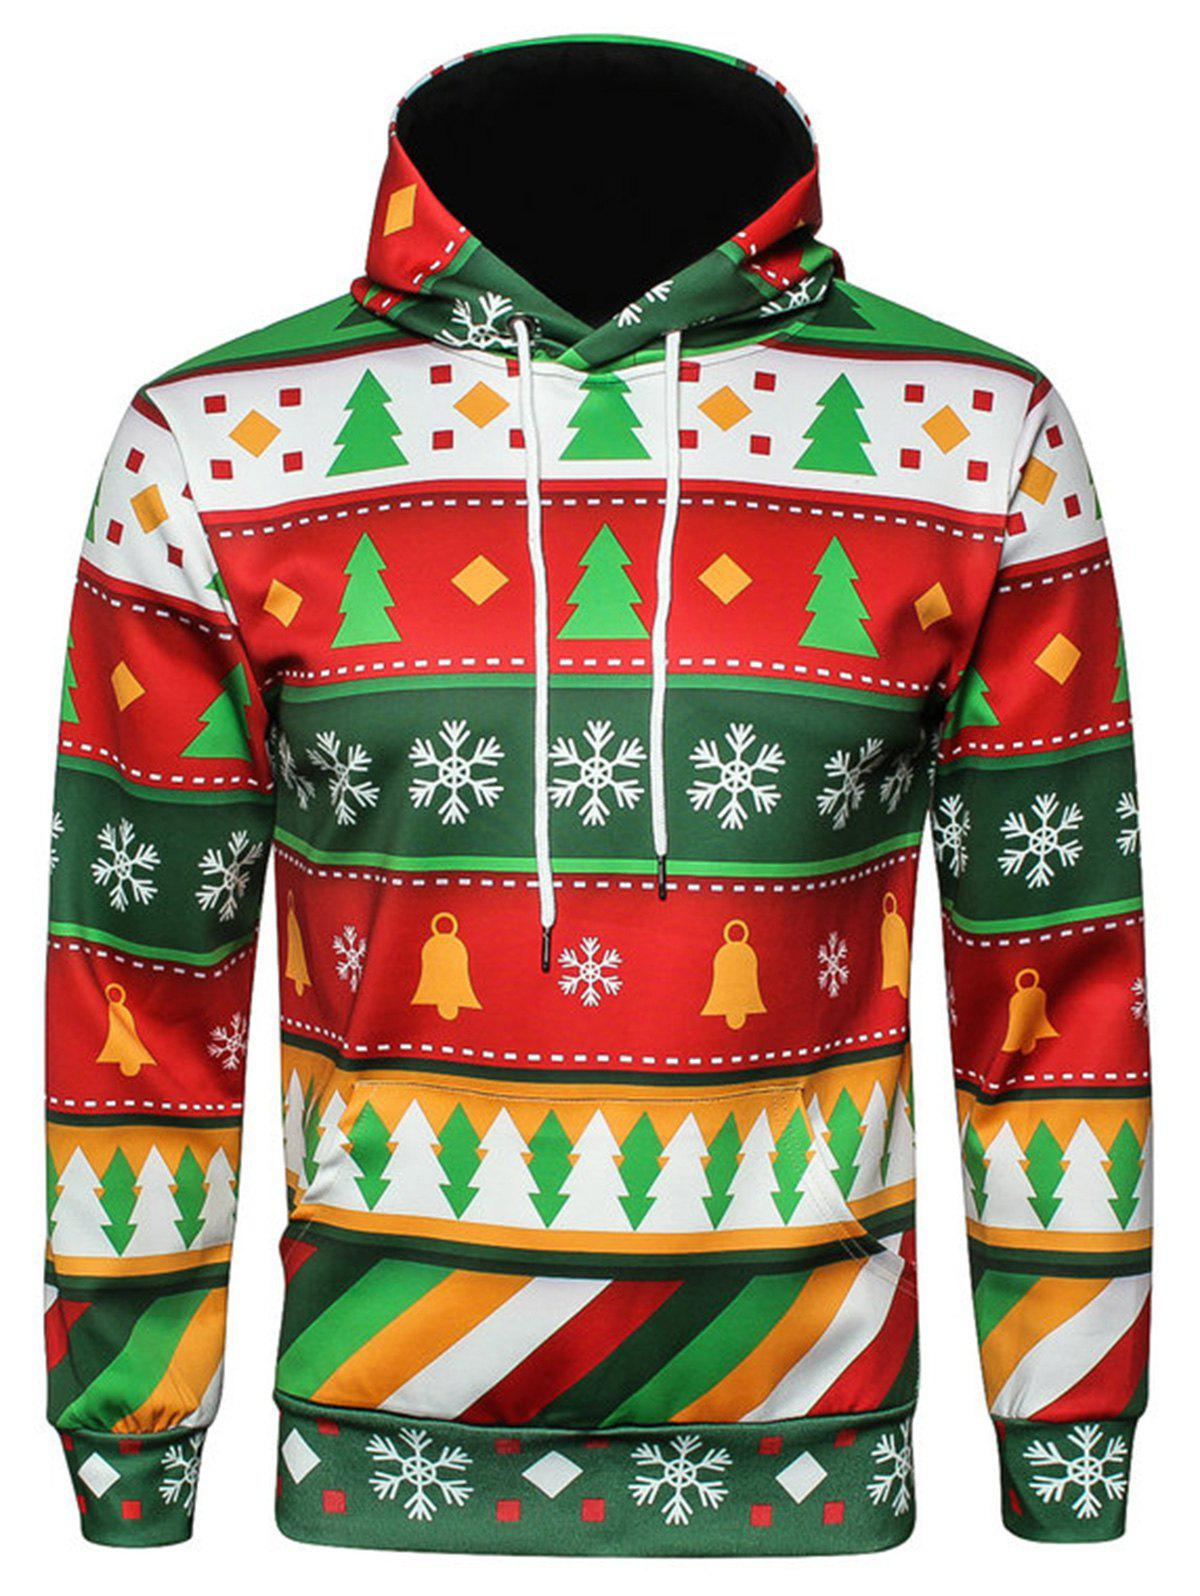 Sweat à Capuche Pull-over de Noël Flocon de Neige Imprimé Géométrique - multicolore 2XL